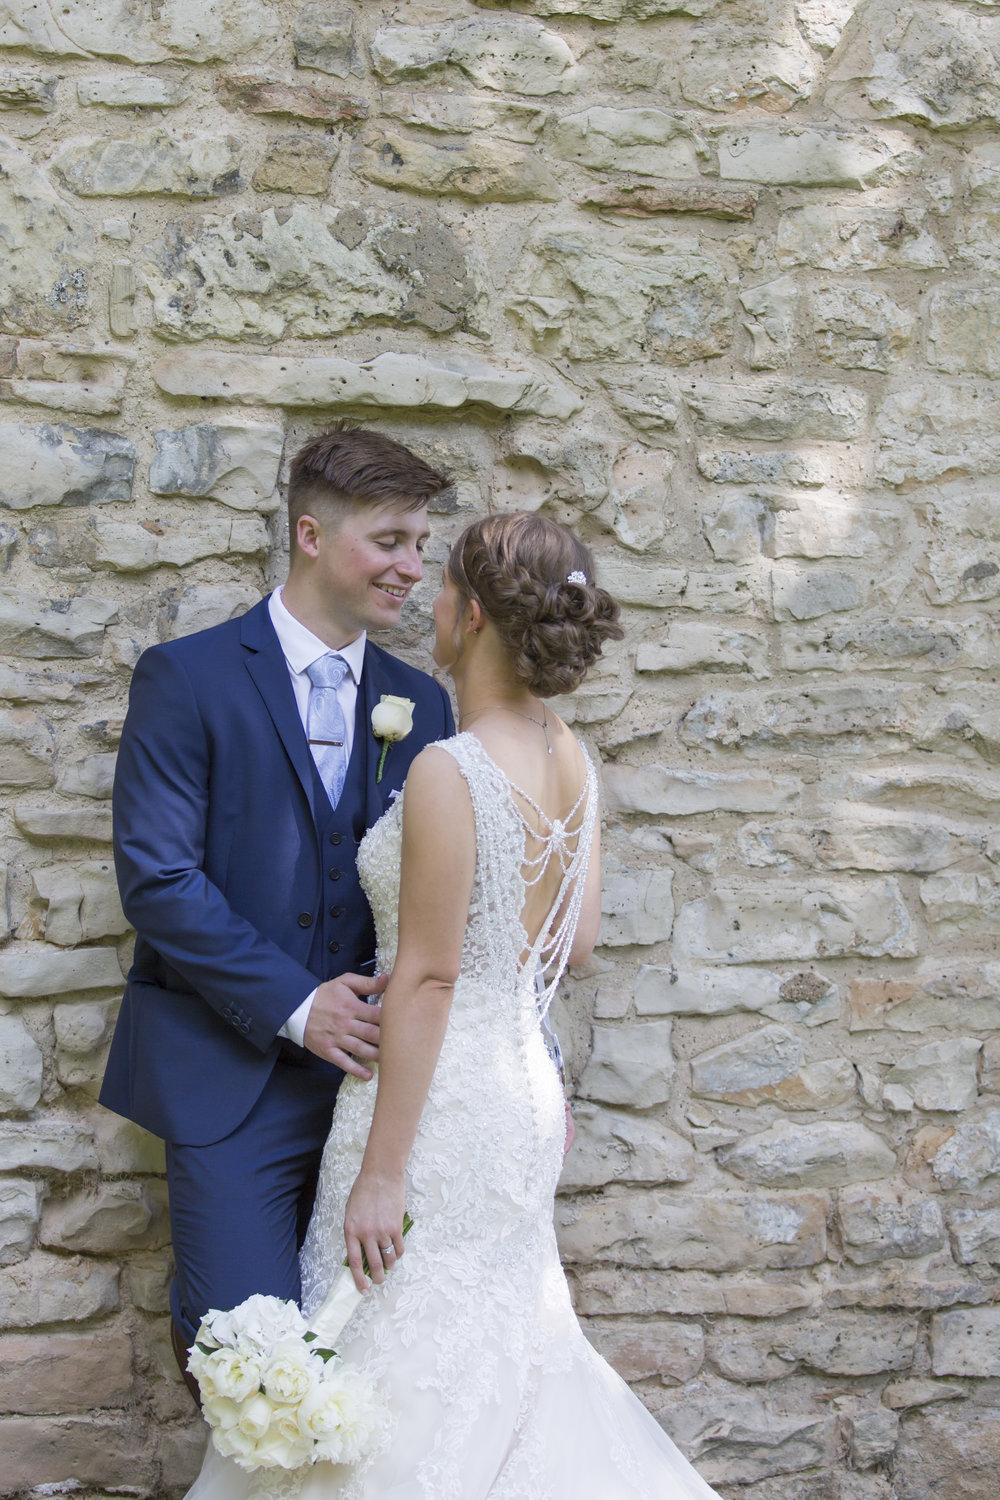 larafrostphotography_cusworthhall_doncaster_southyorkshire_karlandlucy_weddingphotography_photographer_yorkshire_bride_groom-44.jpg